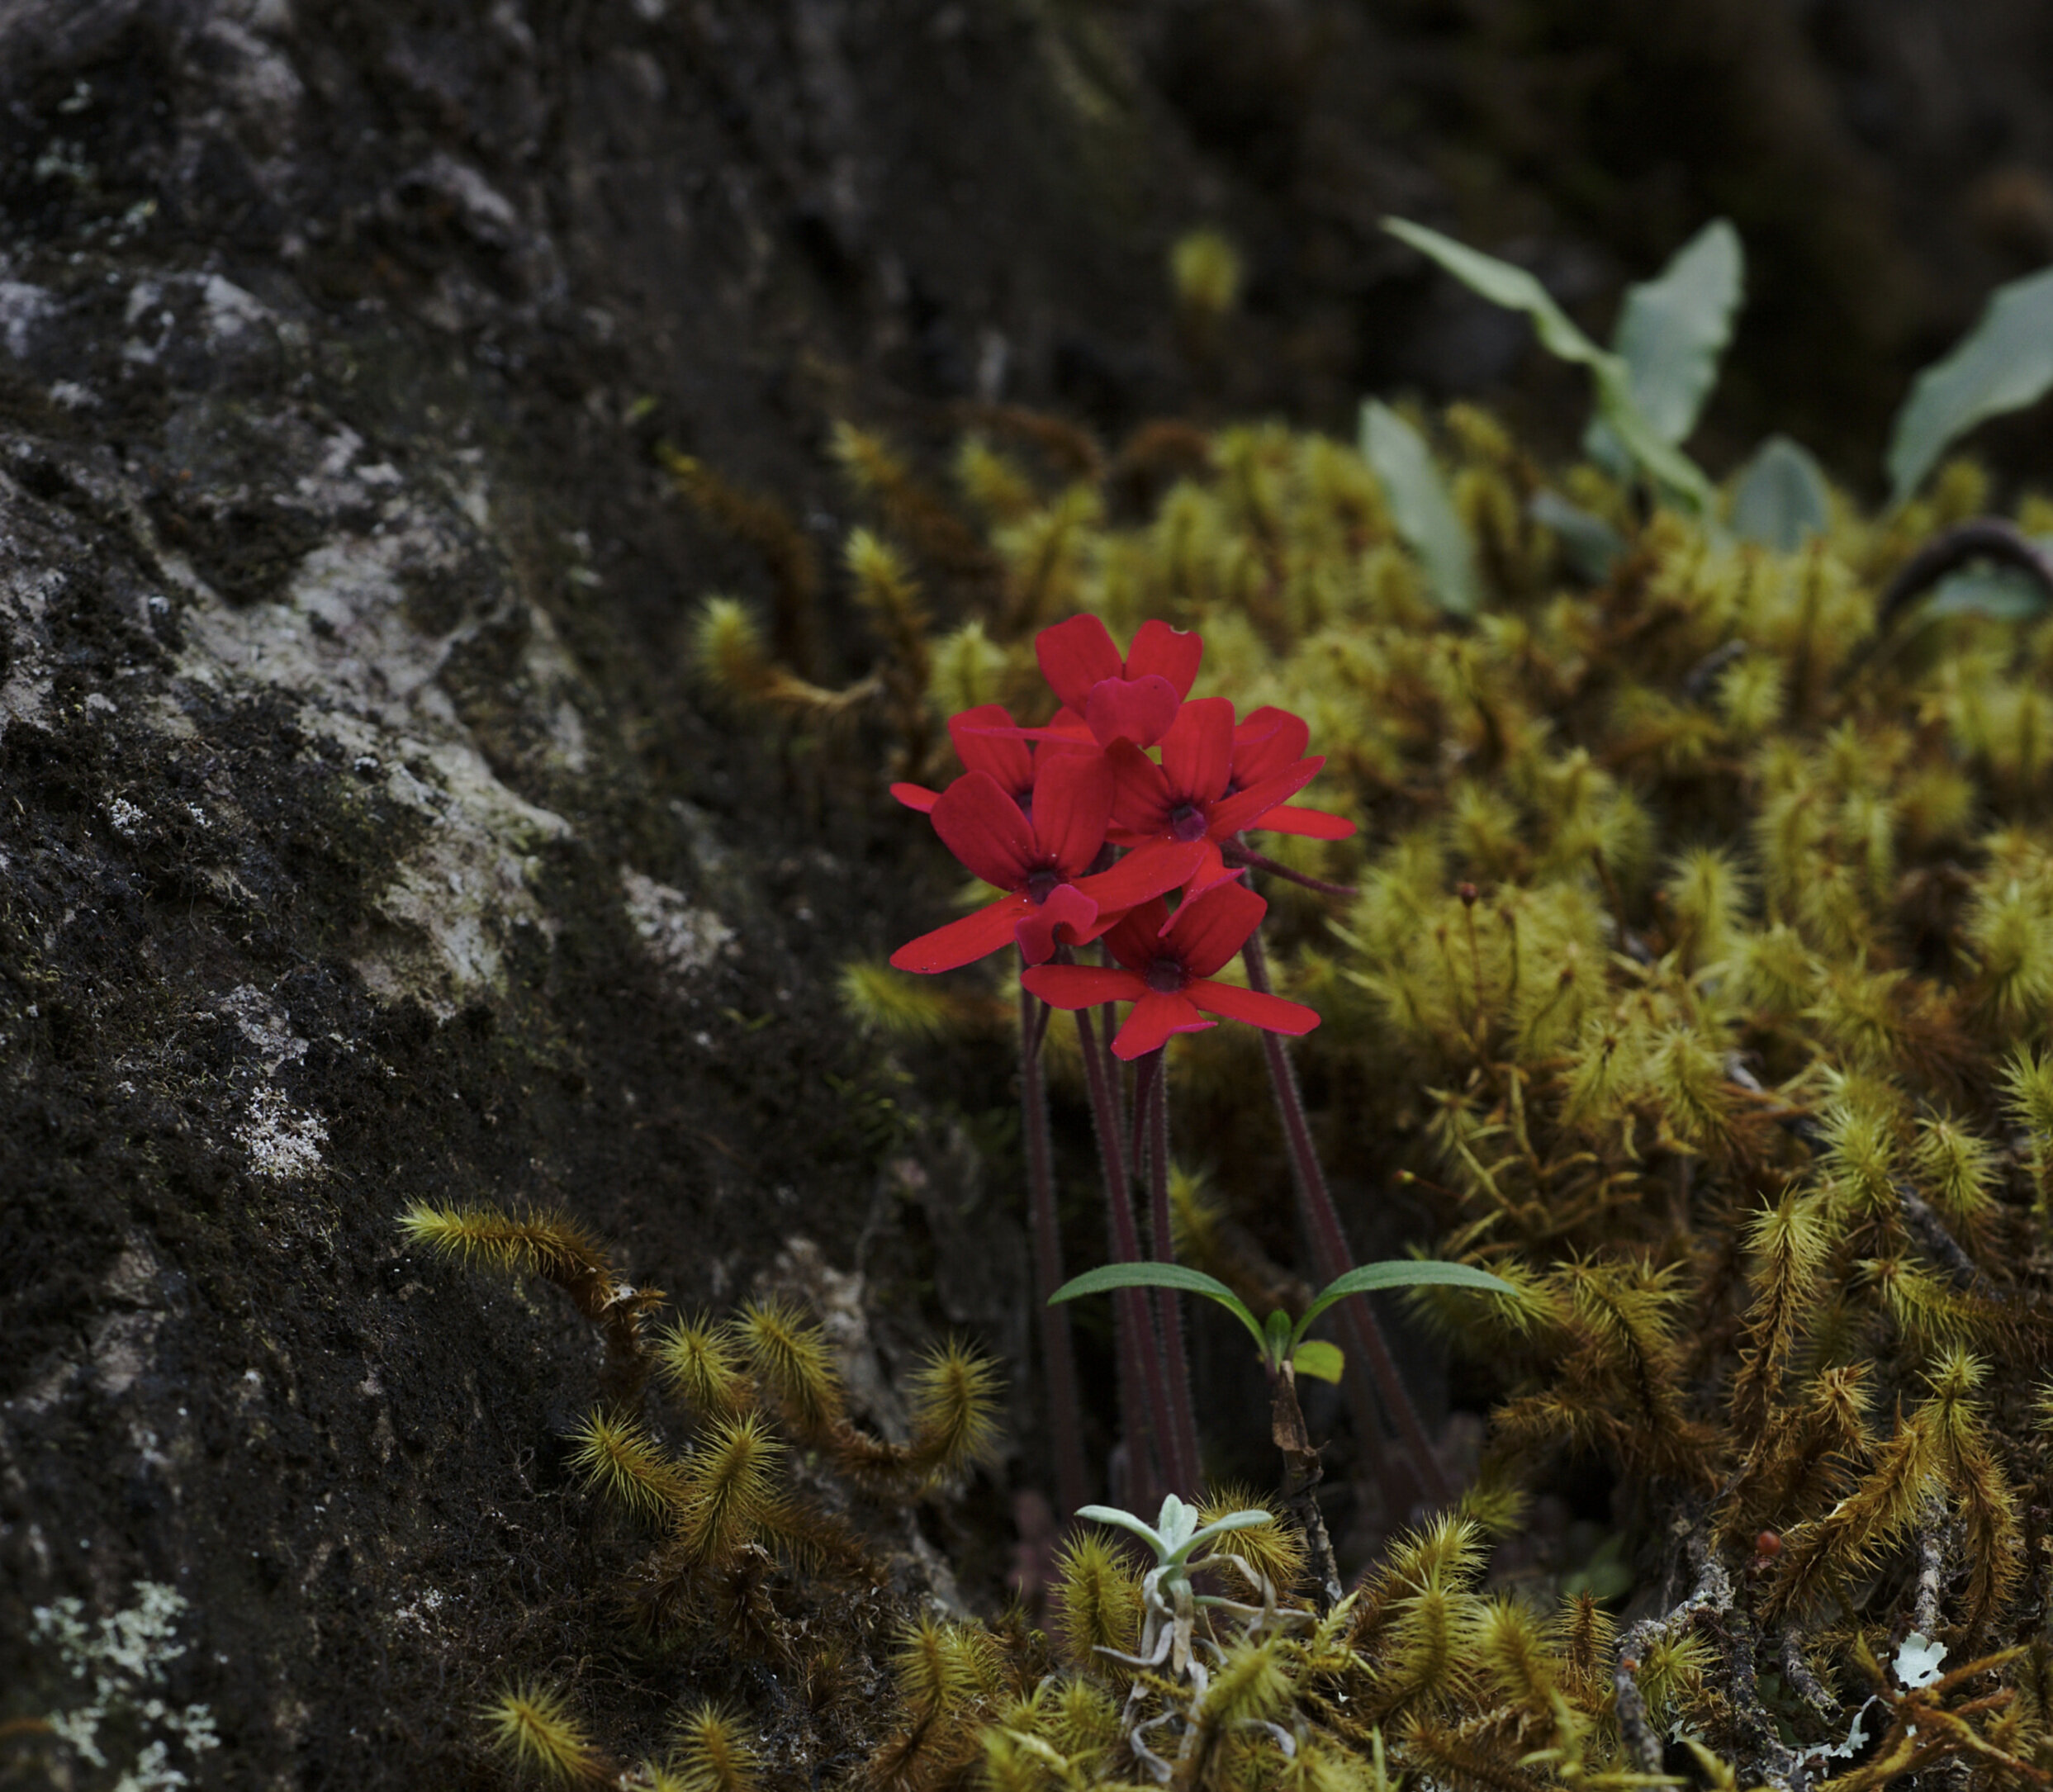 A nice group of dark red  Pinguicula laueana  and miniature lycopodiums. Image: F. Muller.